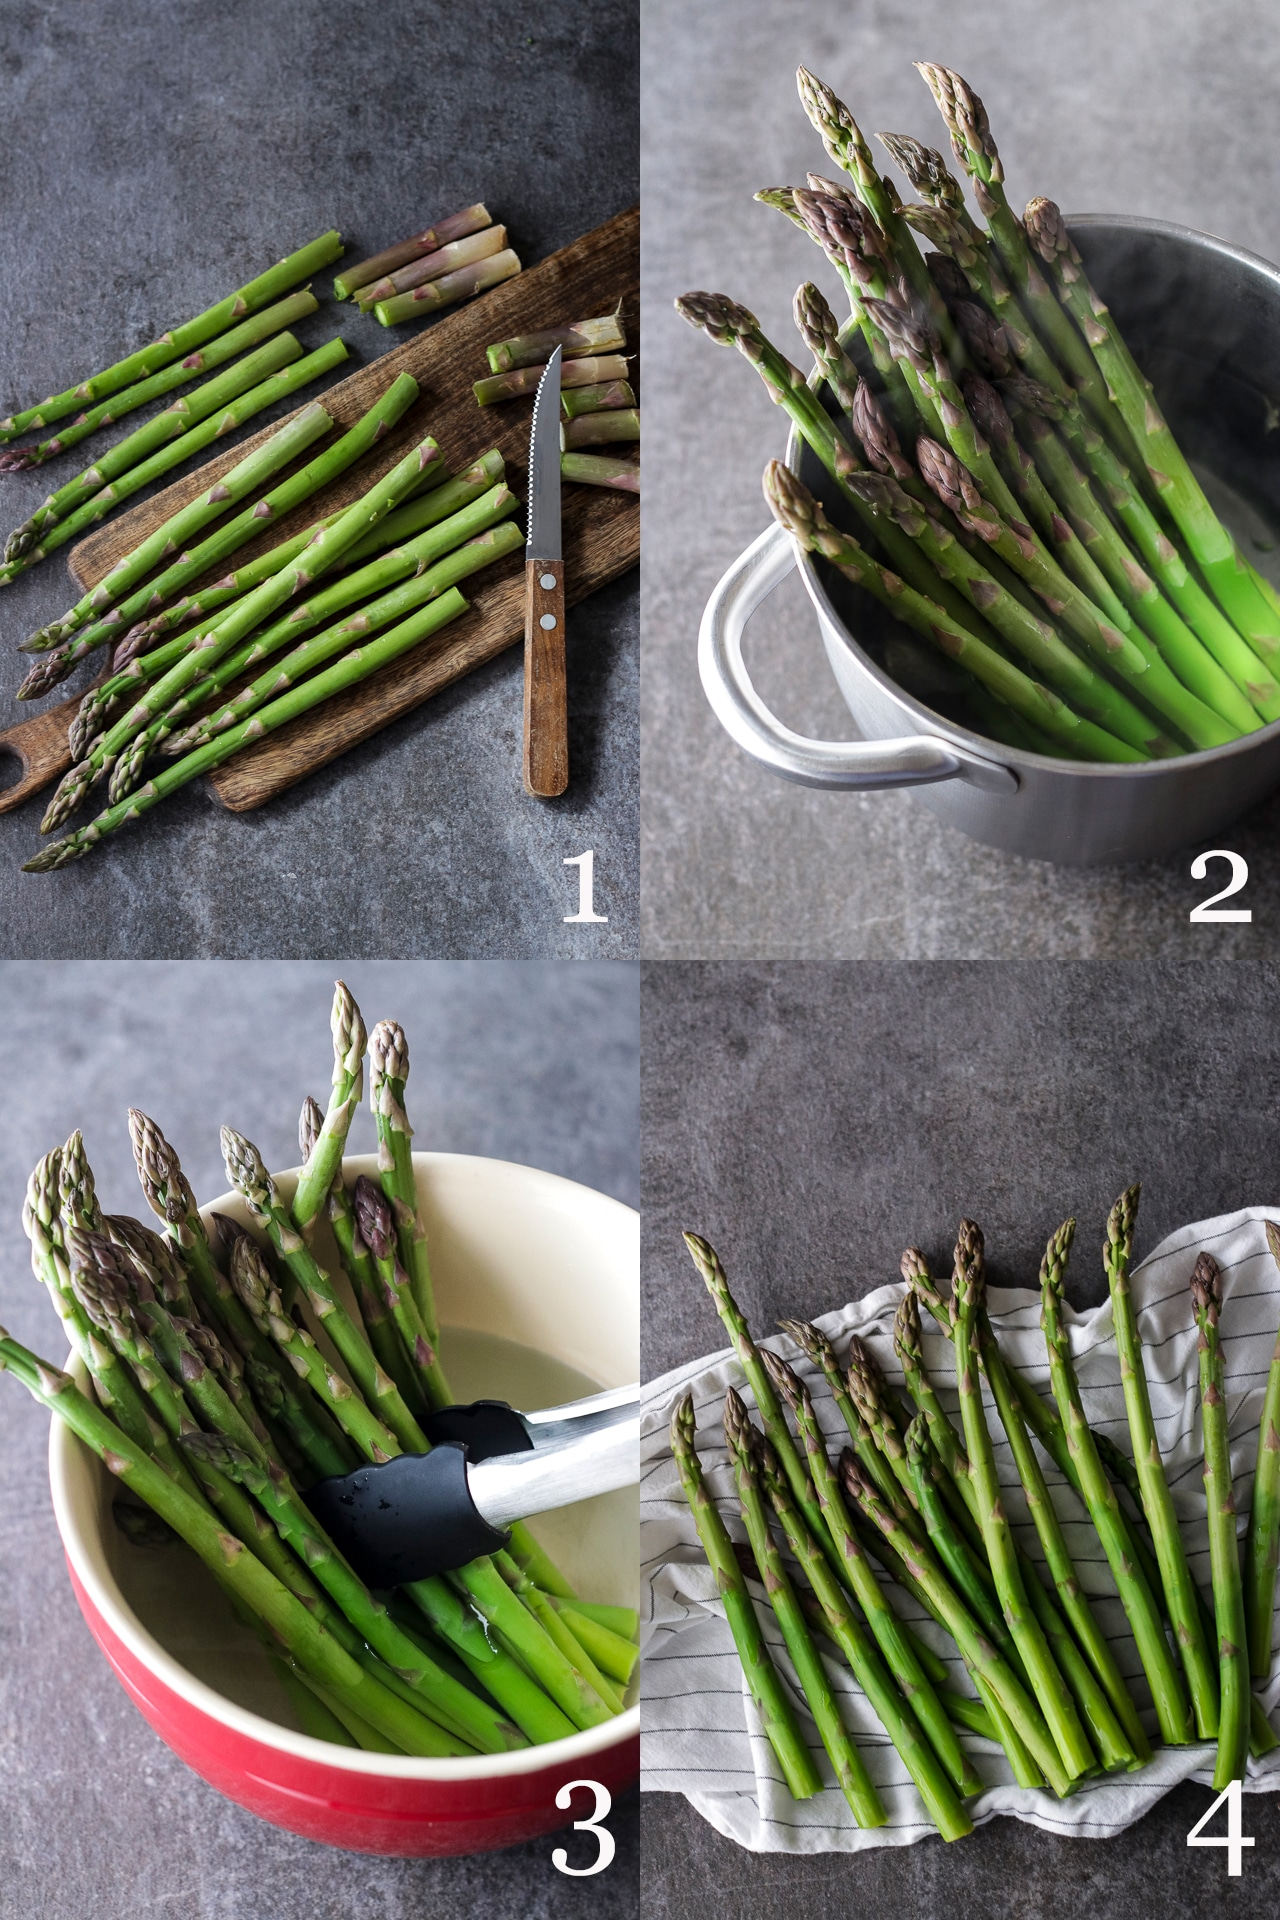 Trimming and Blanching Asparagus Collage